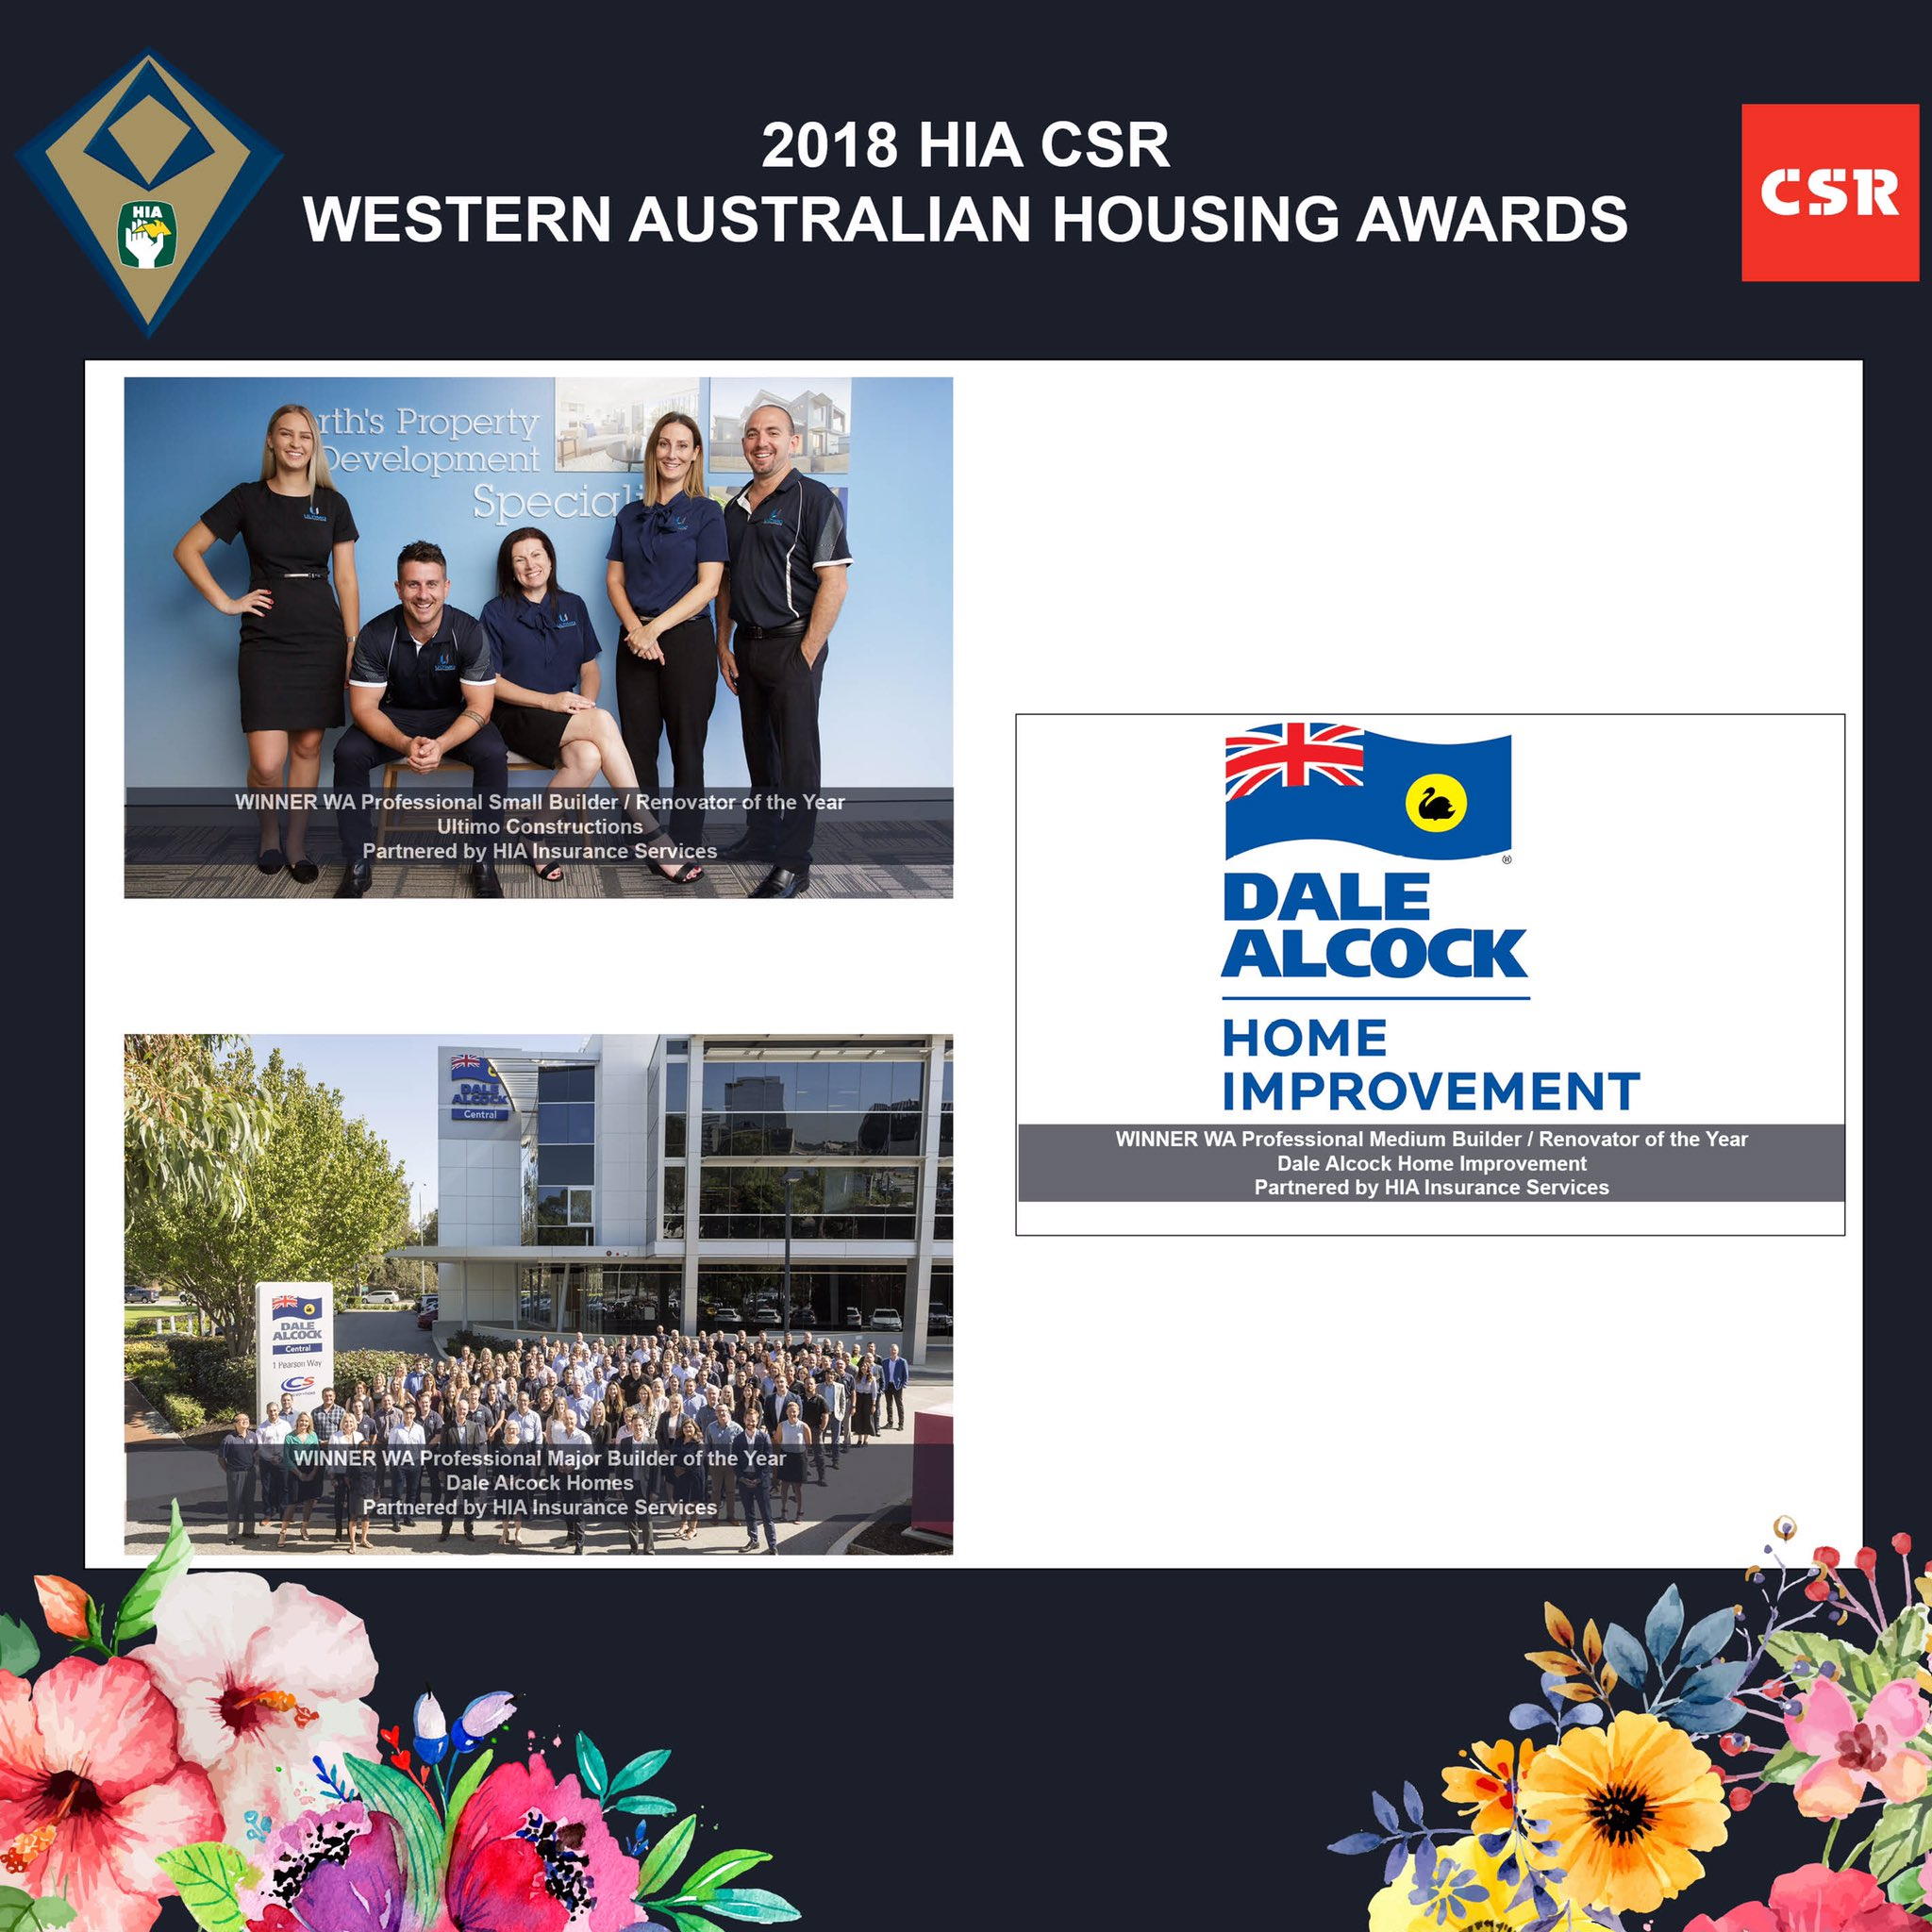 Cath Hart On Twitter Give It Up For Our Winners Of Professional Small Medium And Major Builders Of The Year Ultimo Constructions Dale Alcock Home Improvement And Dalealcockhomes Hiamembers Hiaawards18